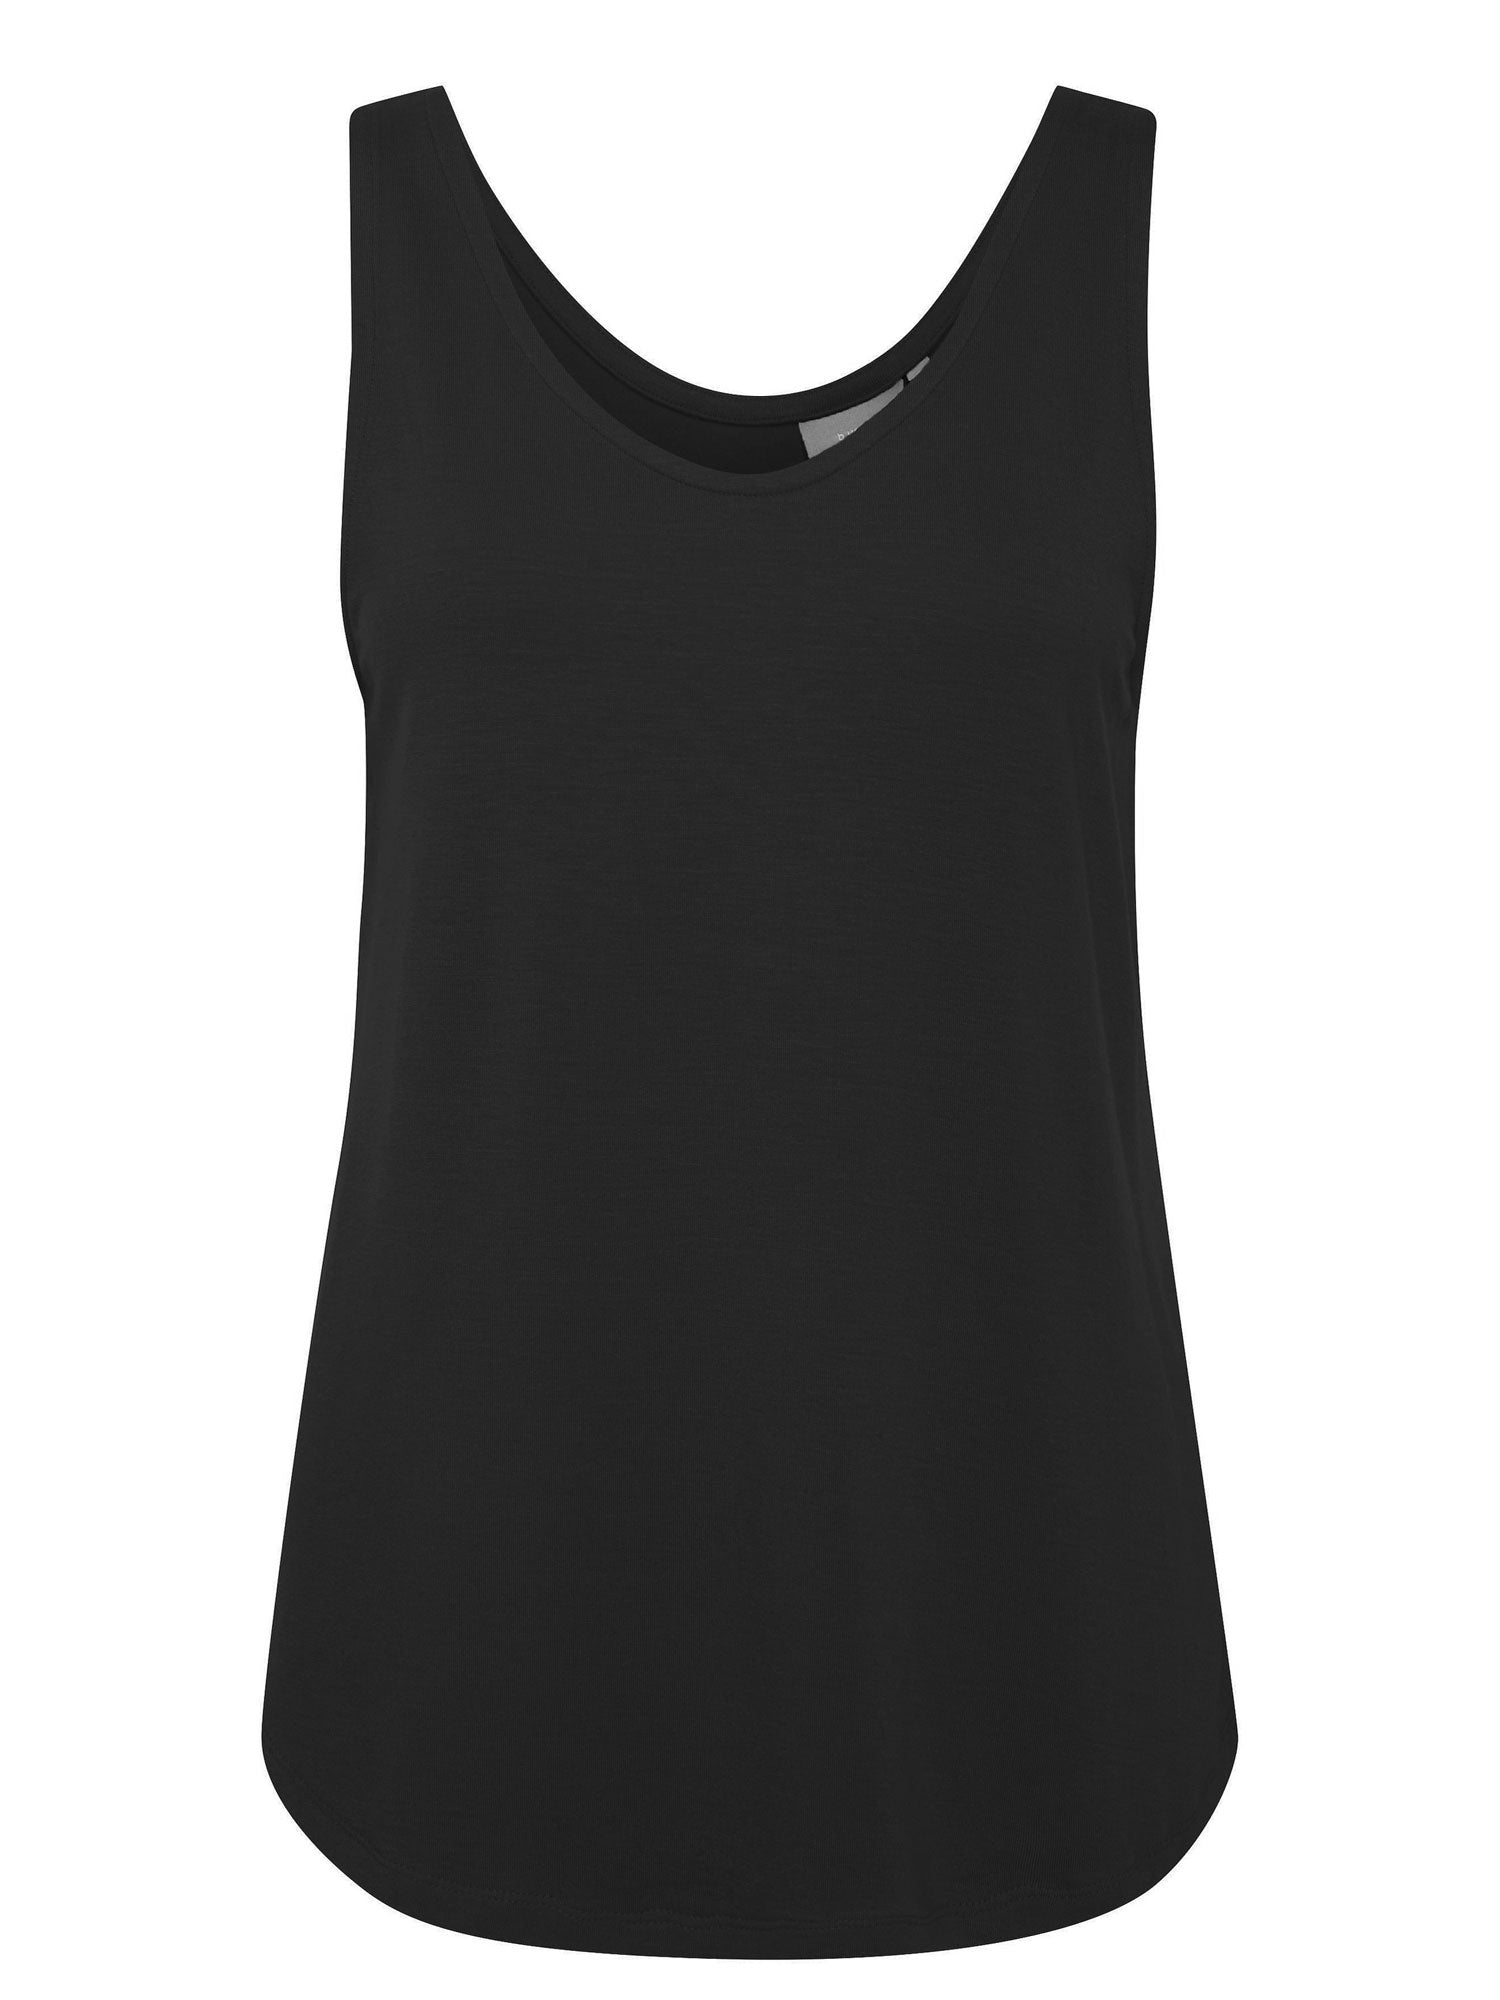 Image of B Young ByRexima Tank Top Black